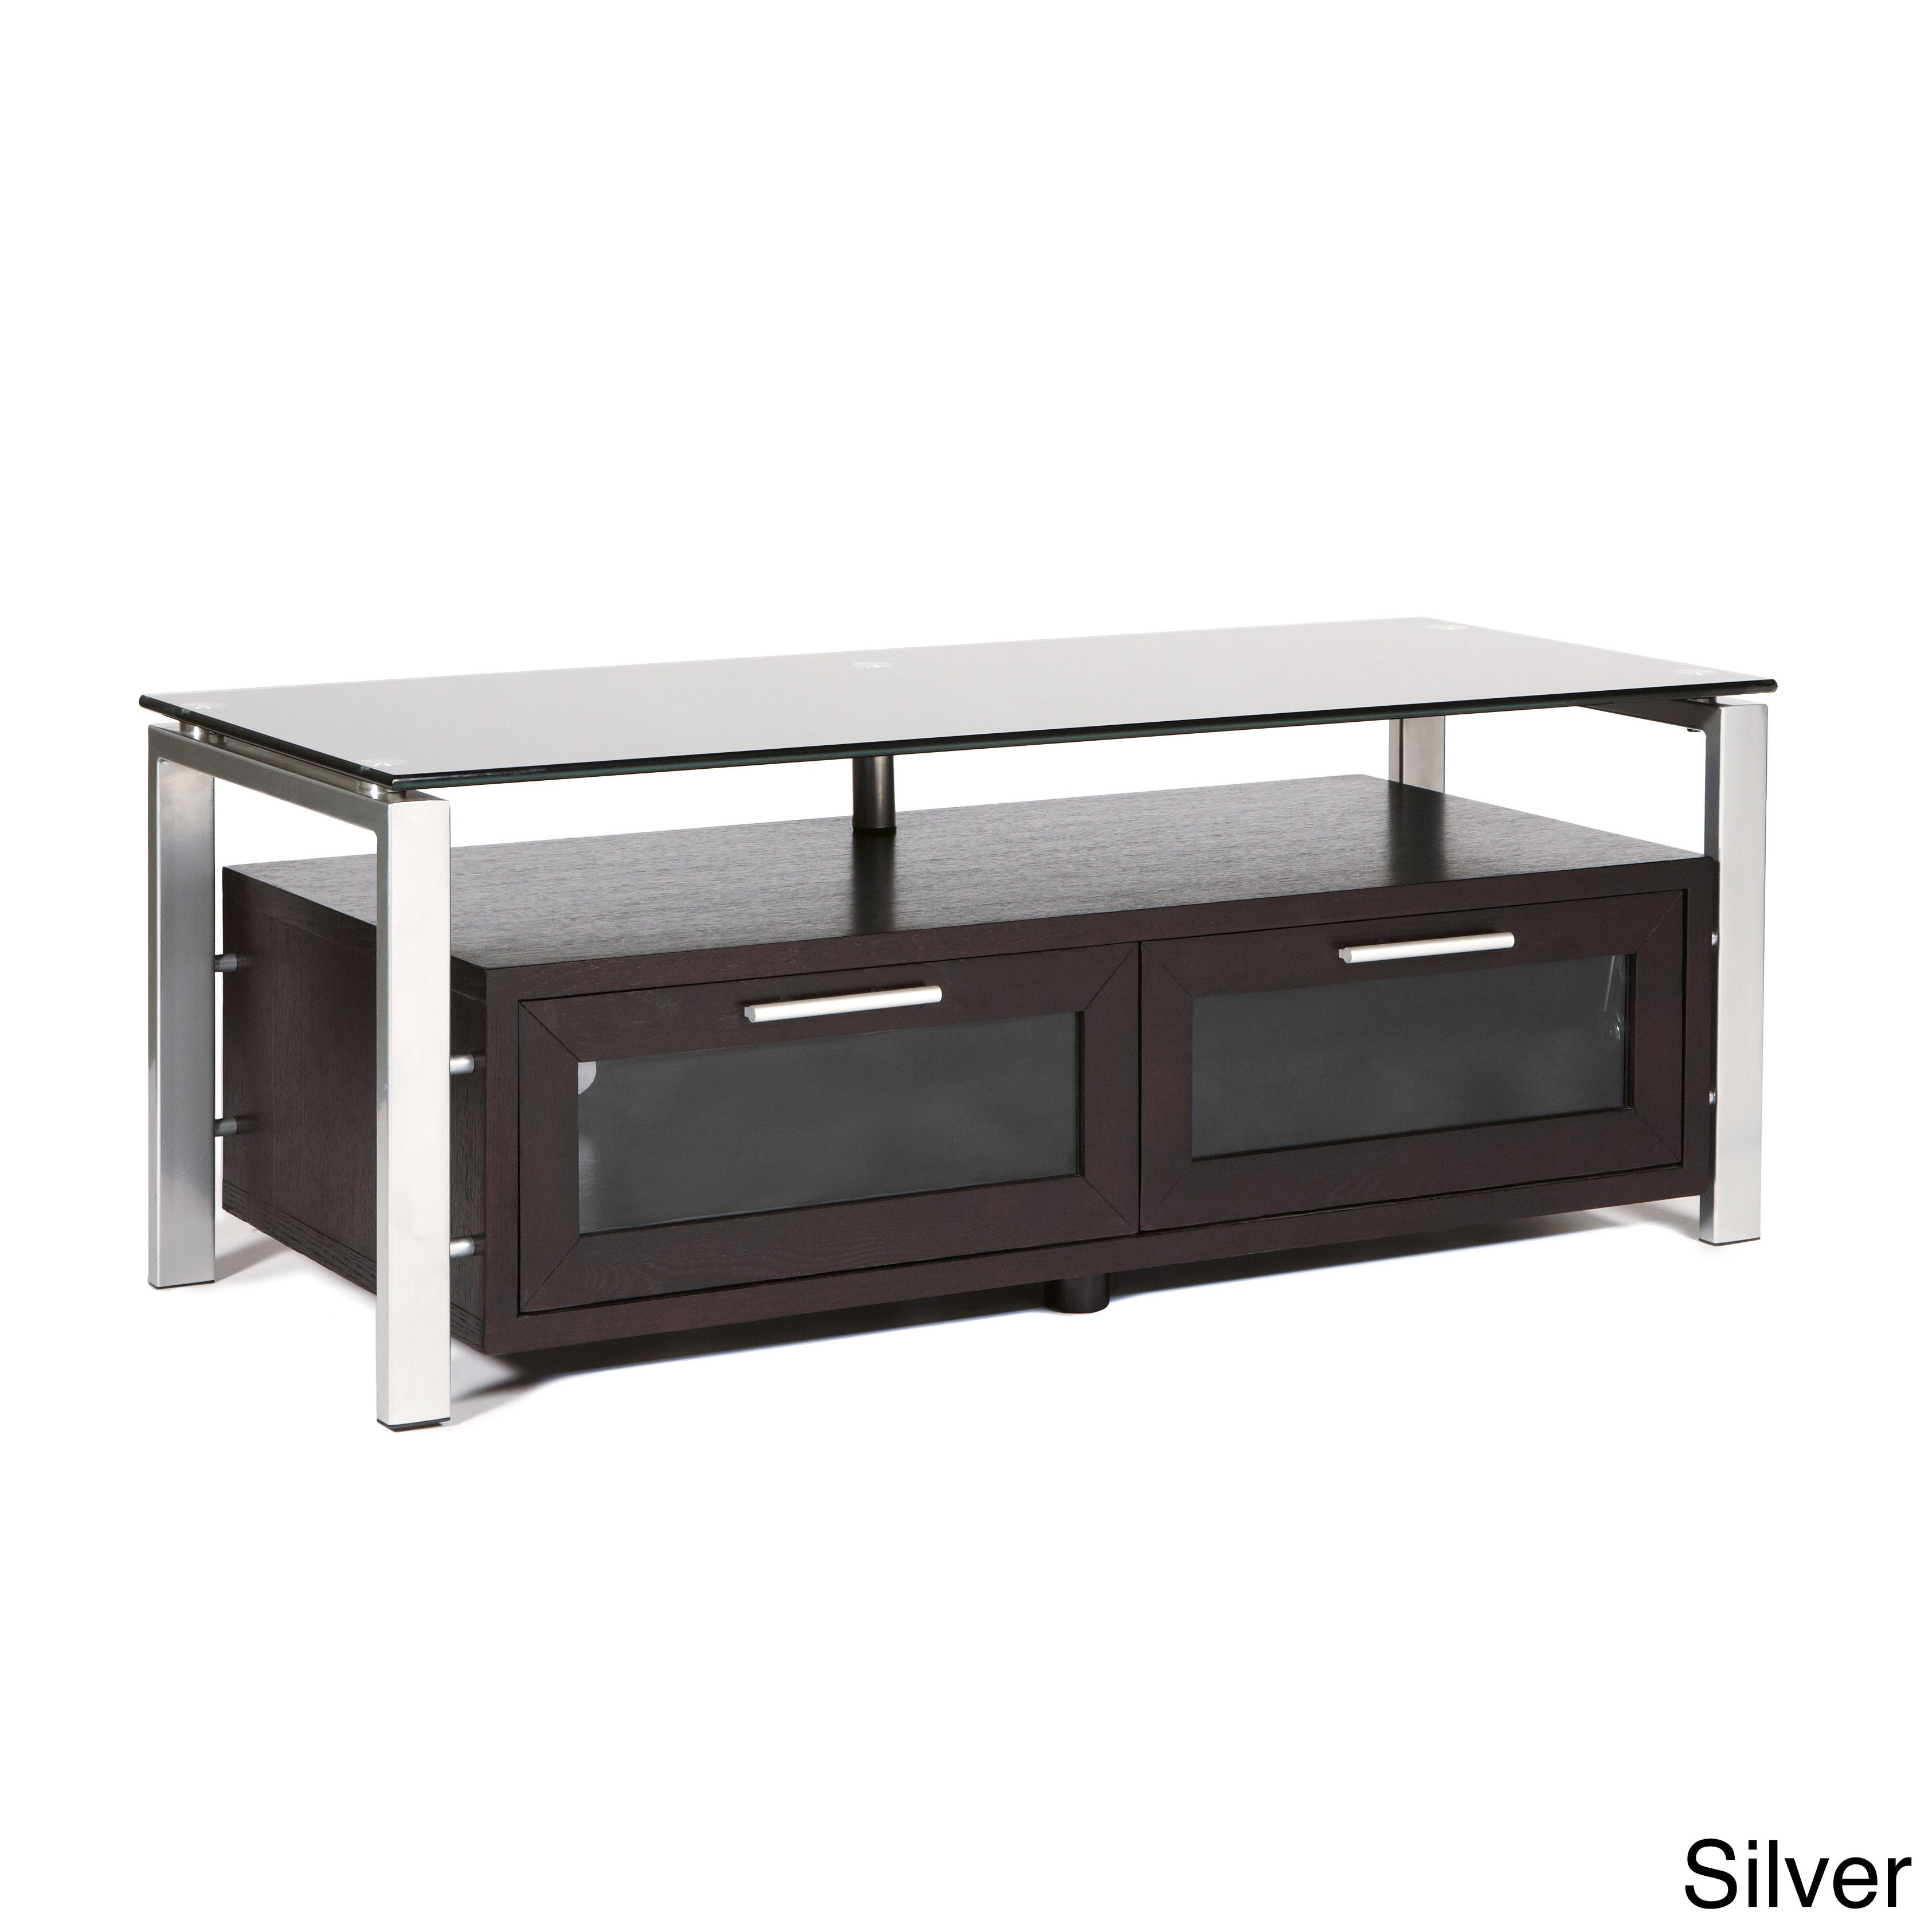 Wood/Glass 50-inch TV Stand at Sears.com